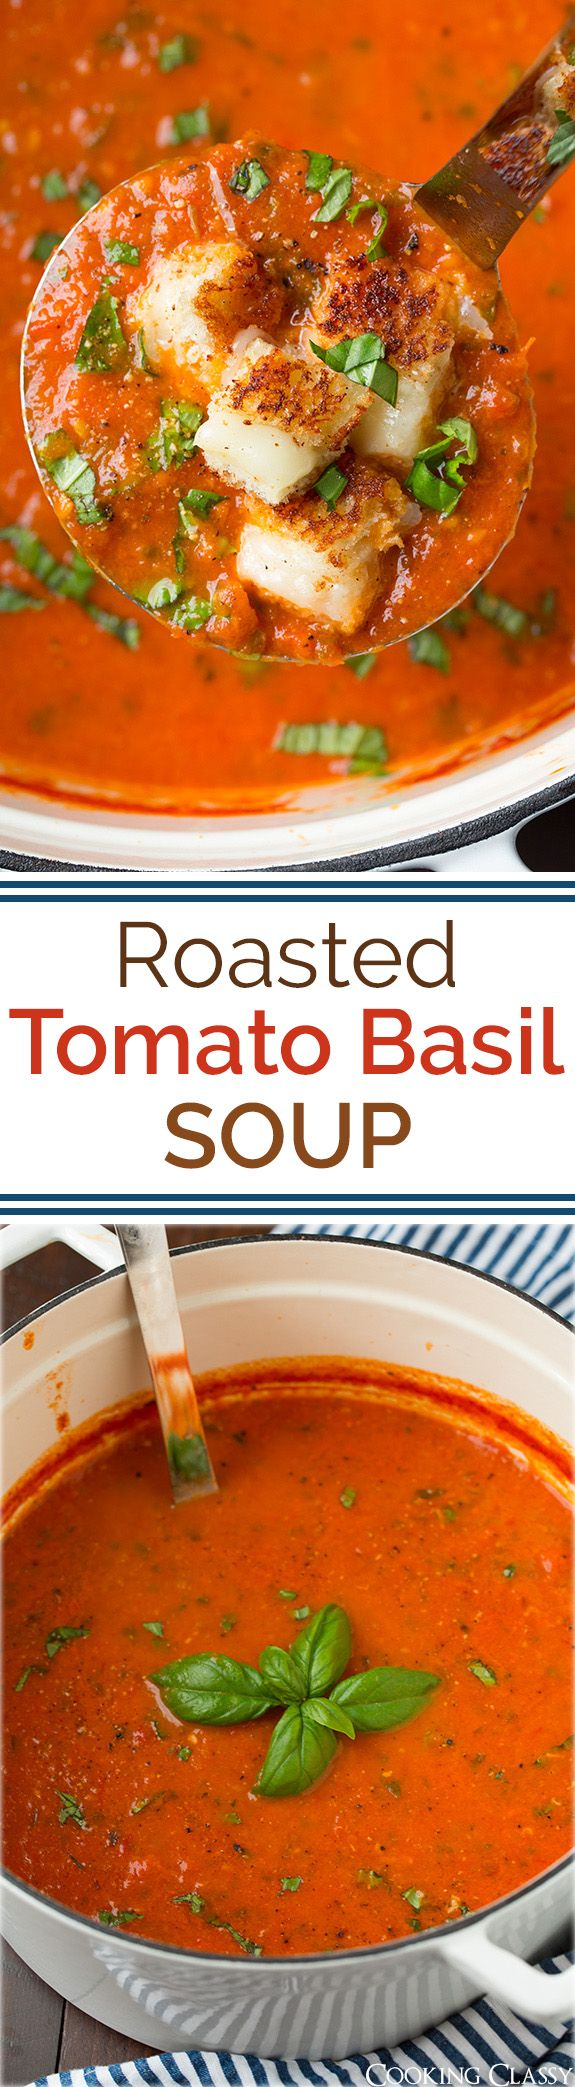 leather coats Roasted Tomato Basil Soup  with optional grilled cheese croutons    this soup is incredibly good  So much fresh flavor and requires minimal ingredients